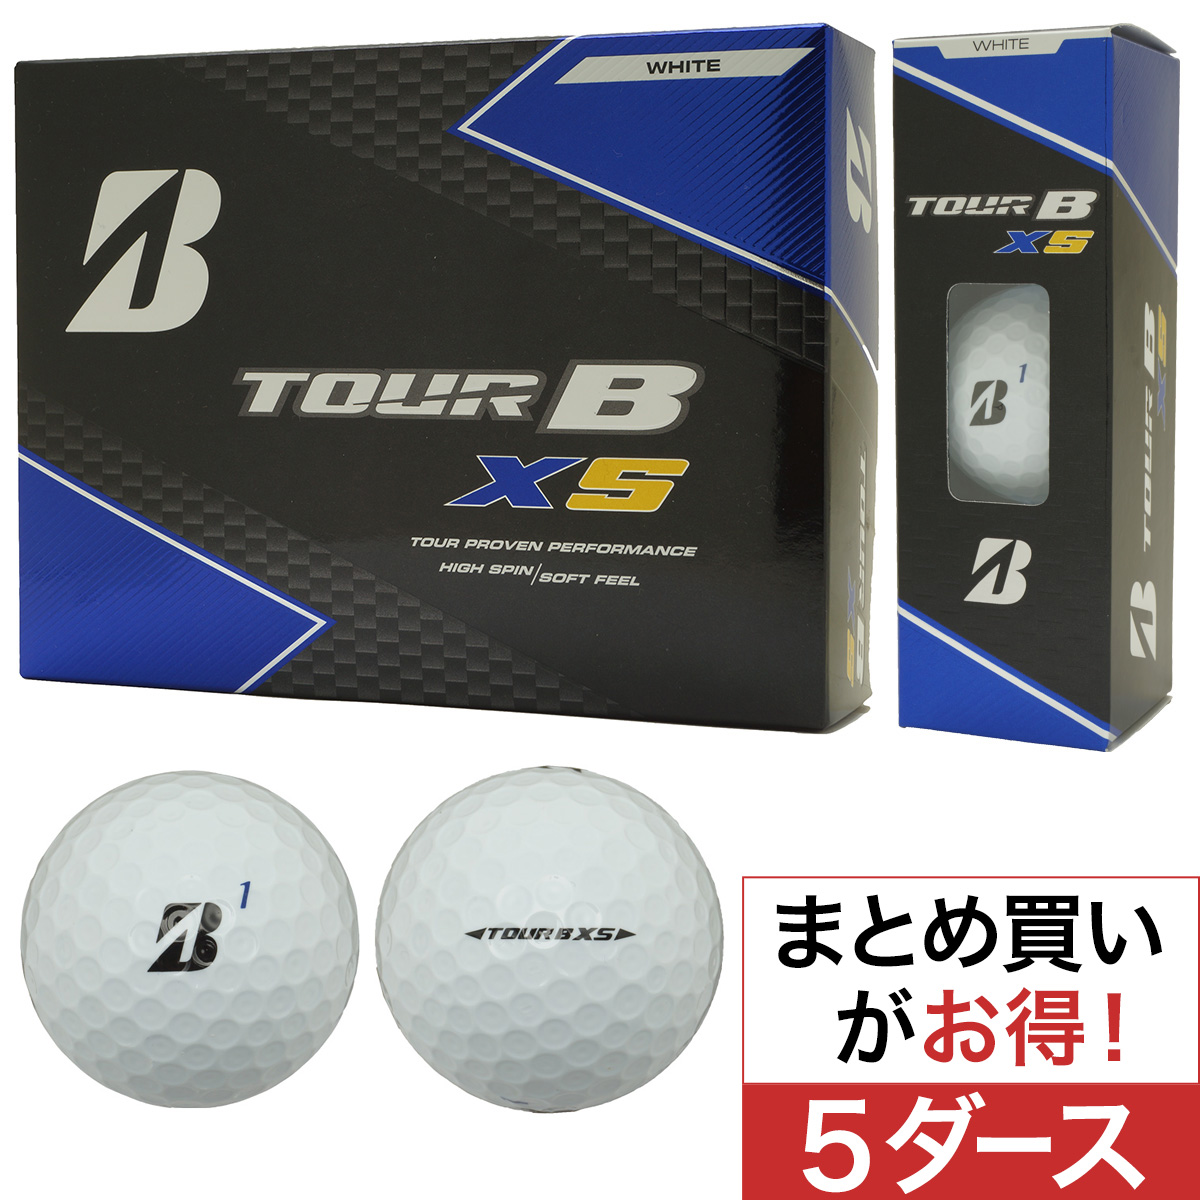 TOUR B XS Bマーク ボール 5ダースセット